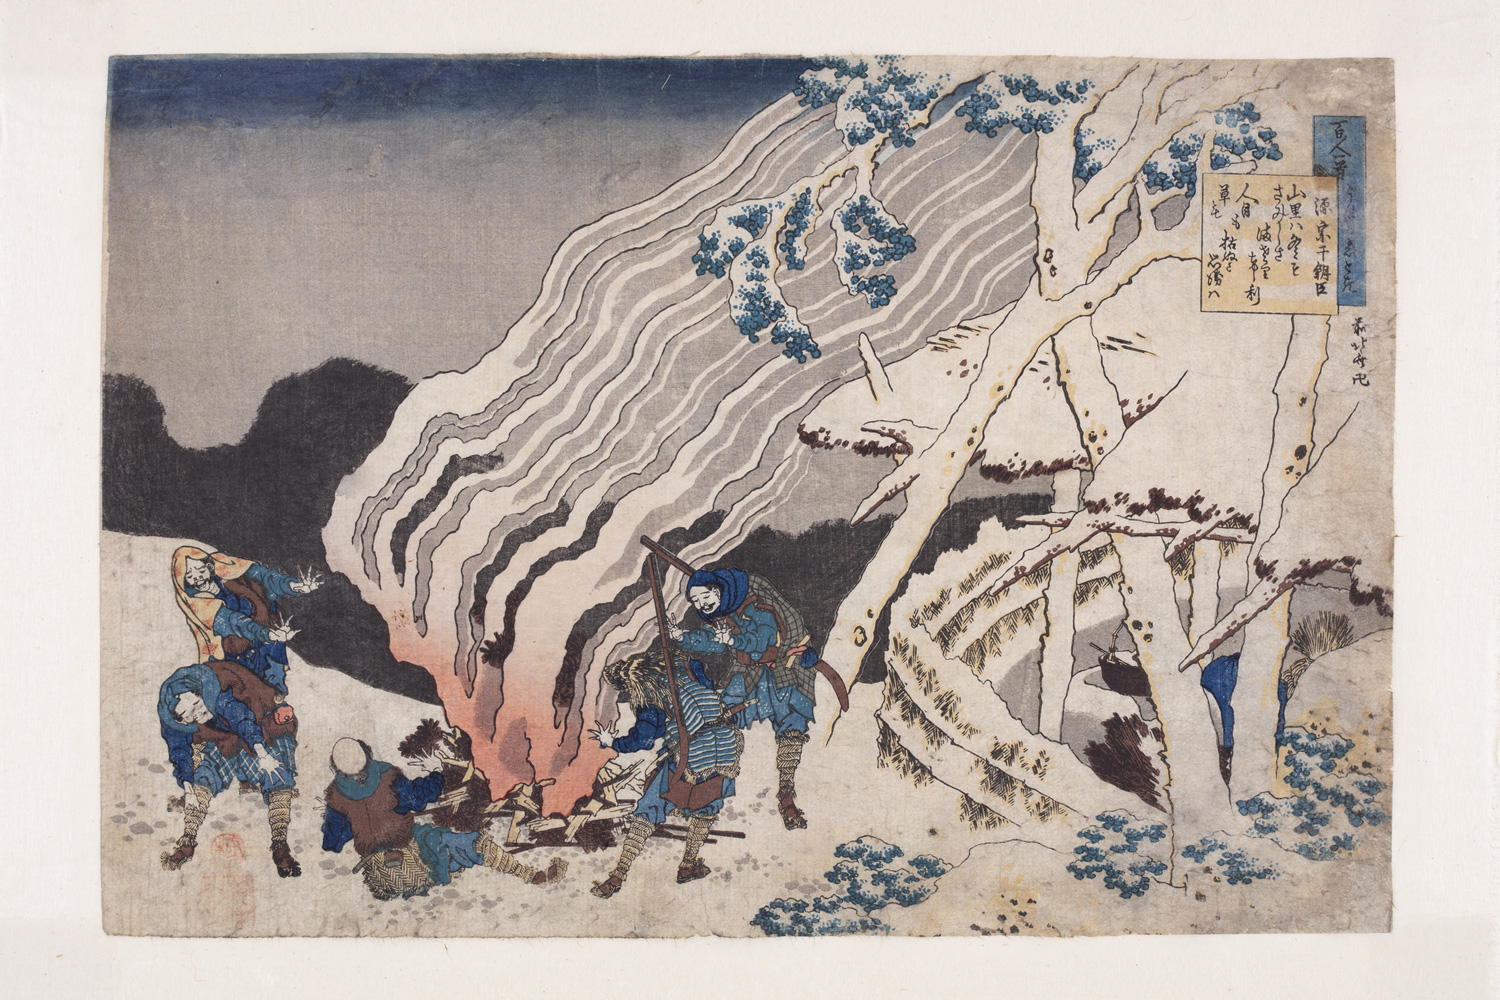 Japanese print of a group of men dressed in traditional clothes., surrounding a large camp fire, sending out flames and plumes of smoke. One man recoils hands outstretched another smiles.